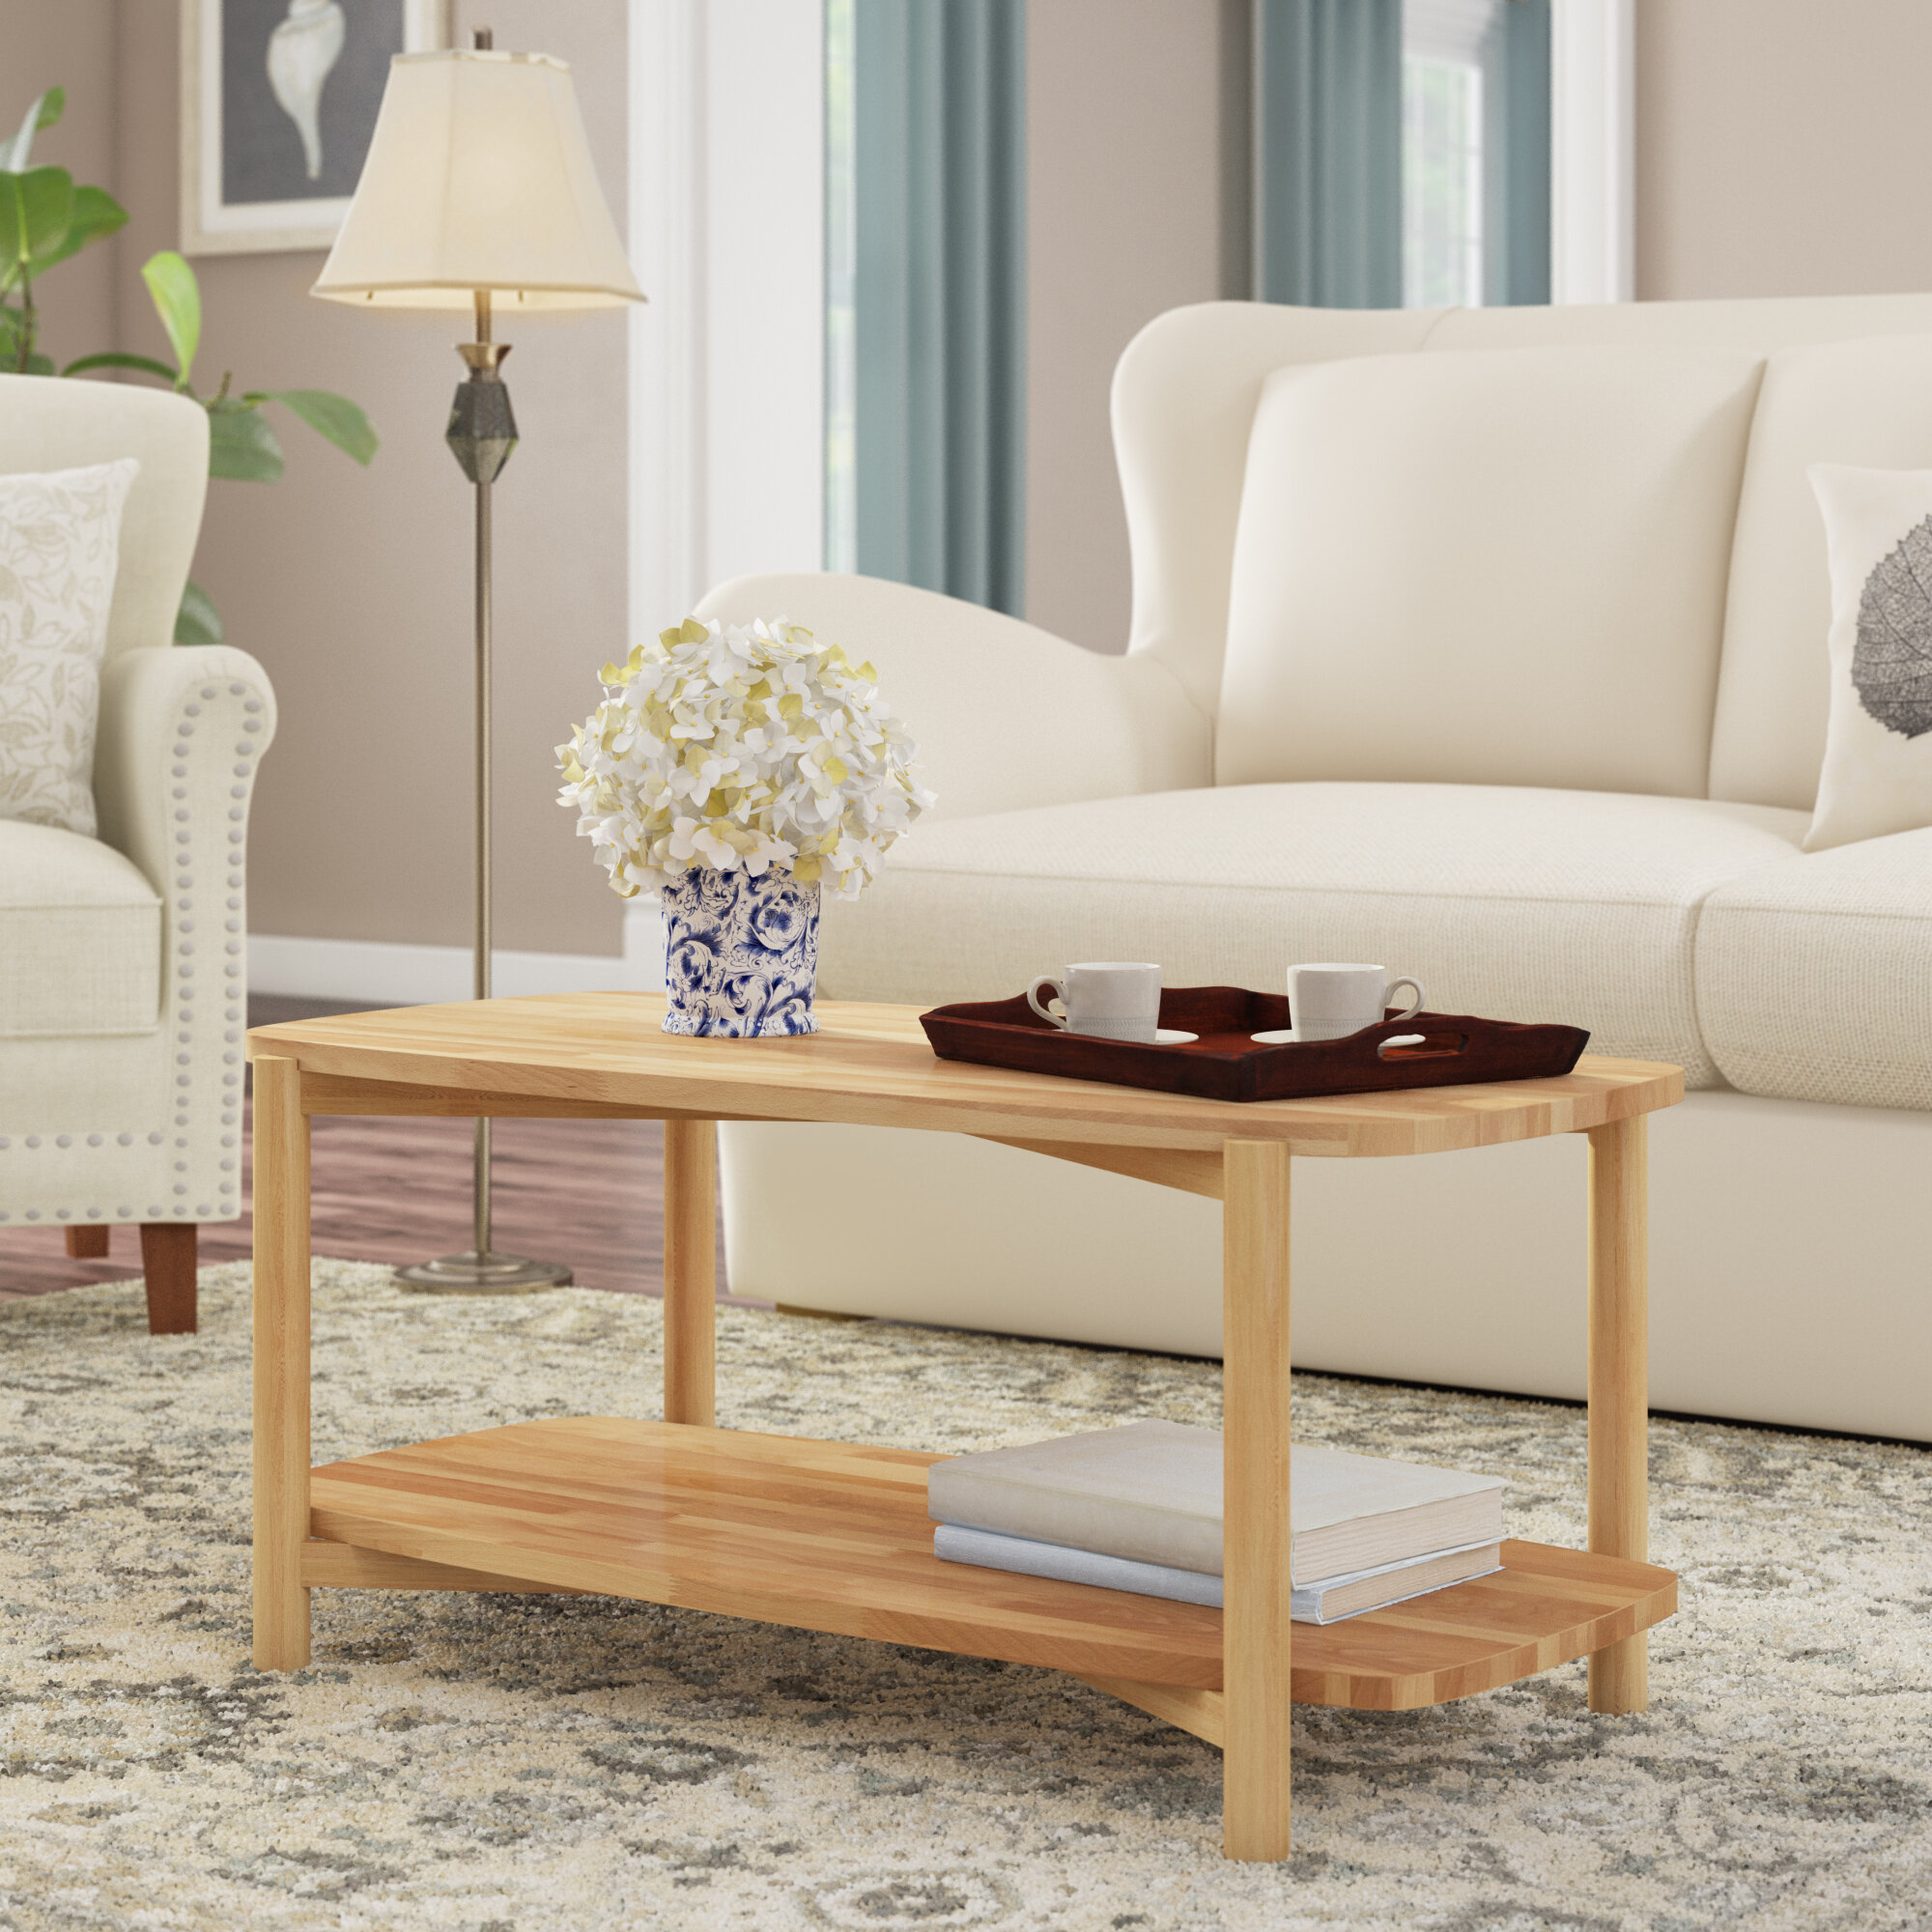 Solid Wood Winston Porter Coffee Tables You Ll Love In 2021 Wayfair